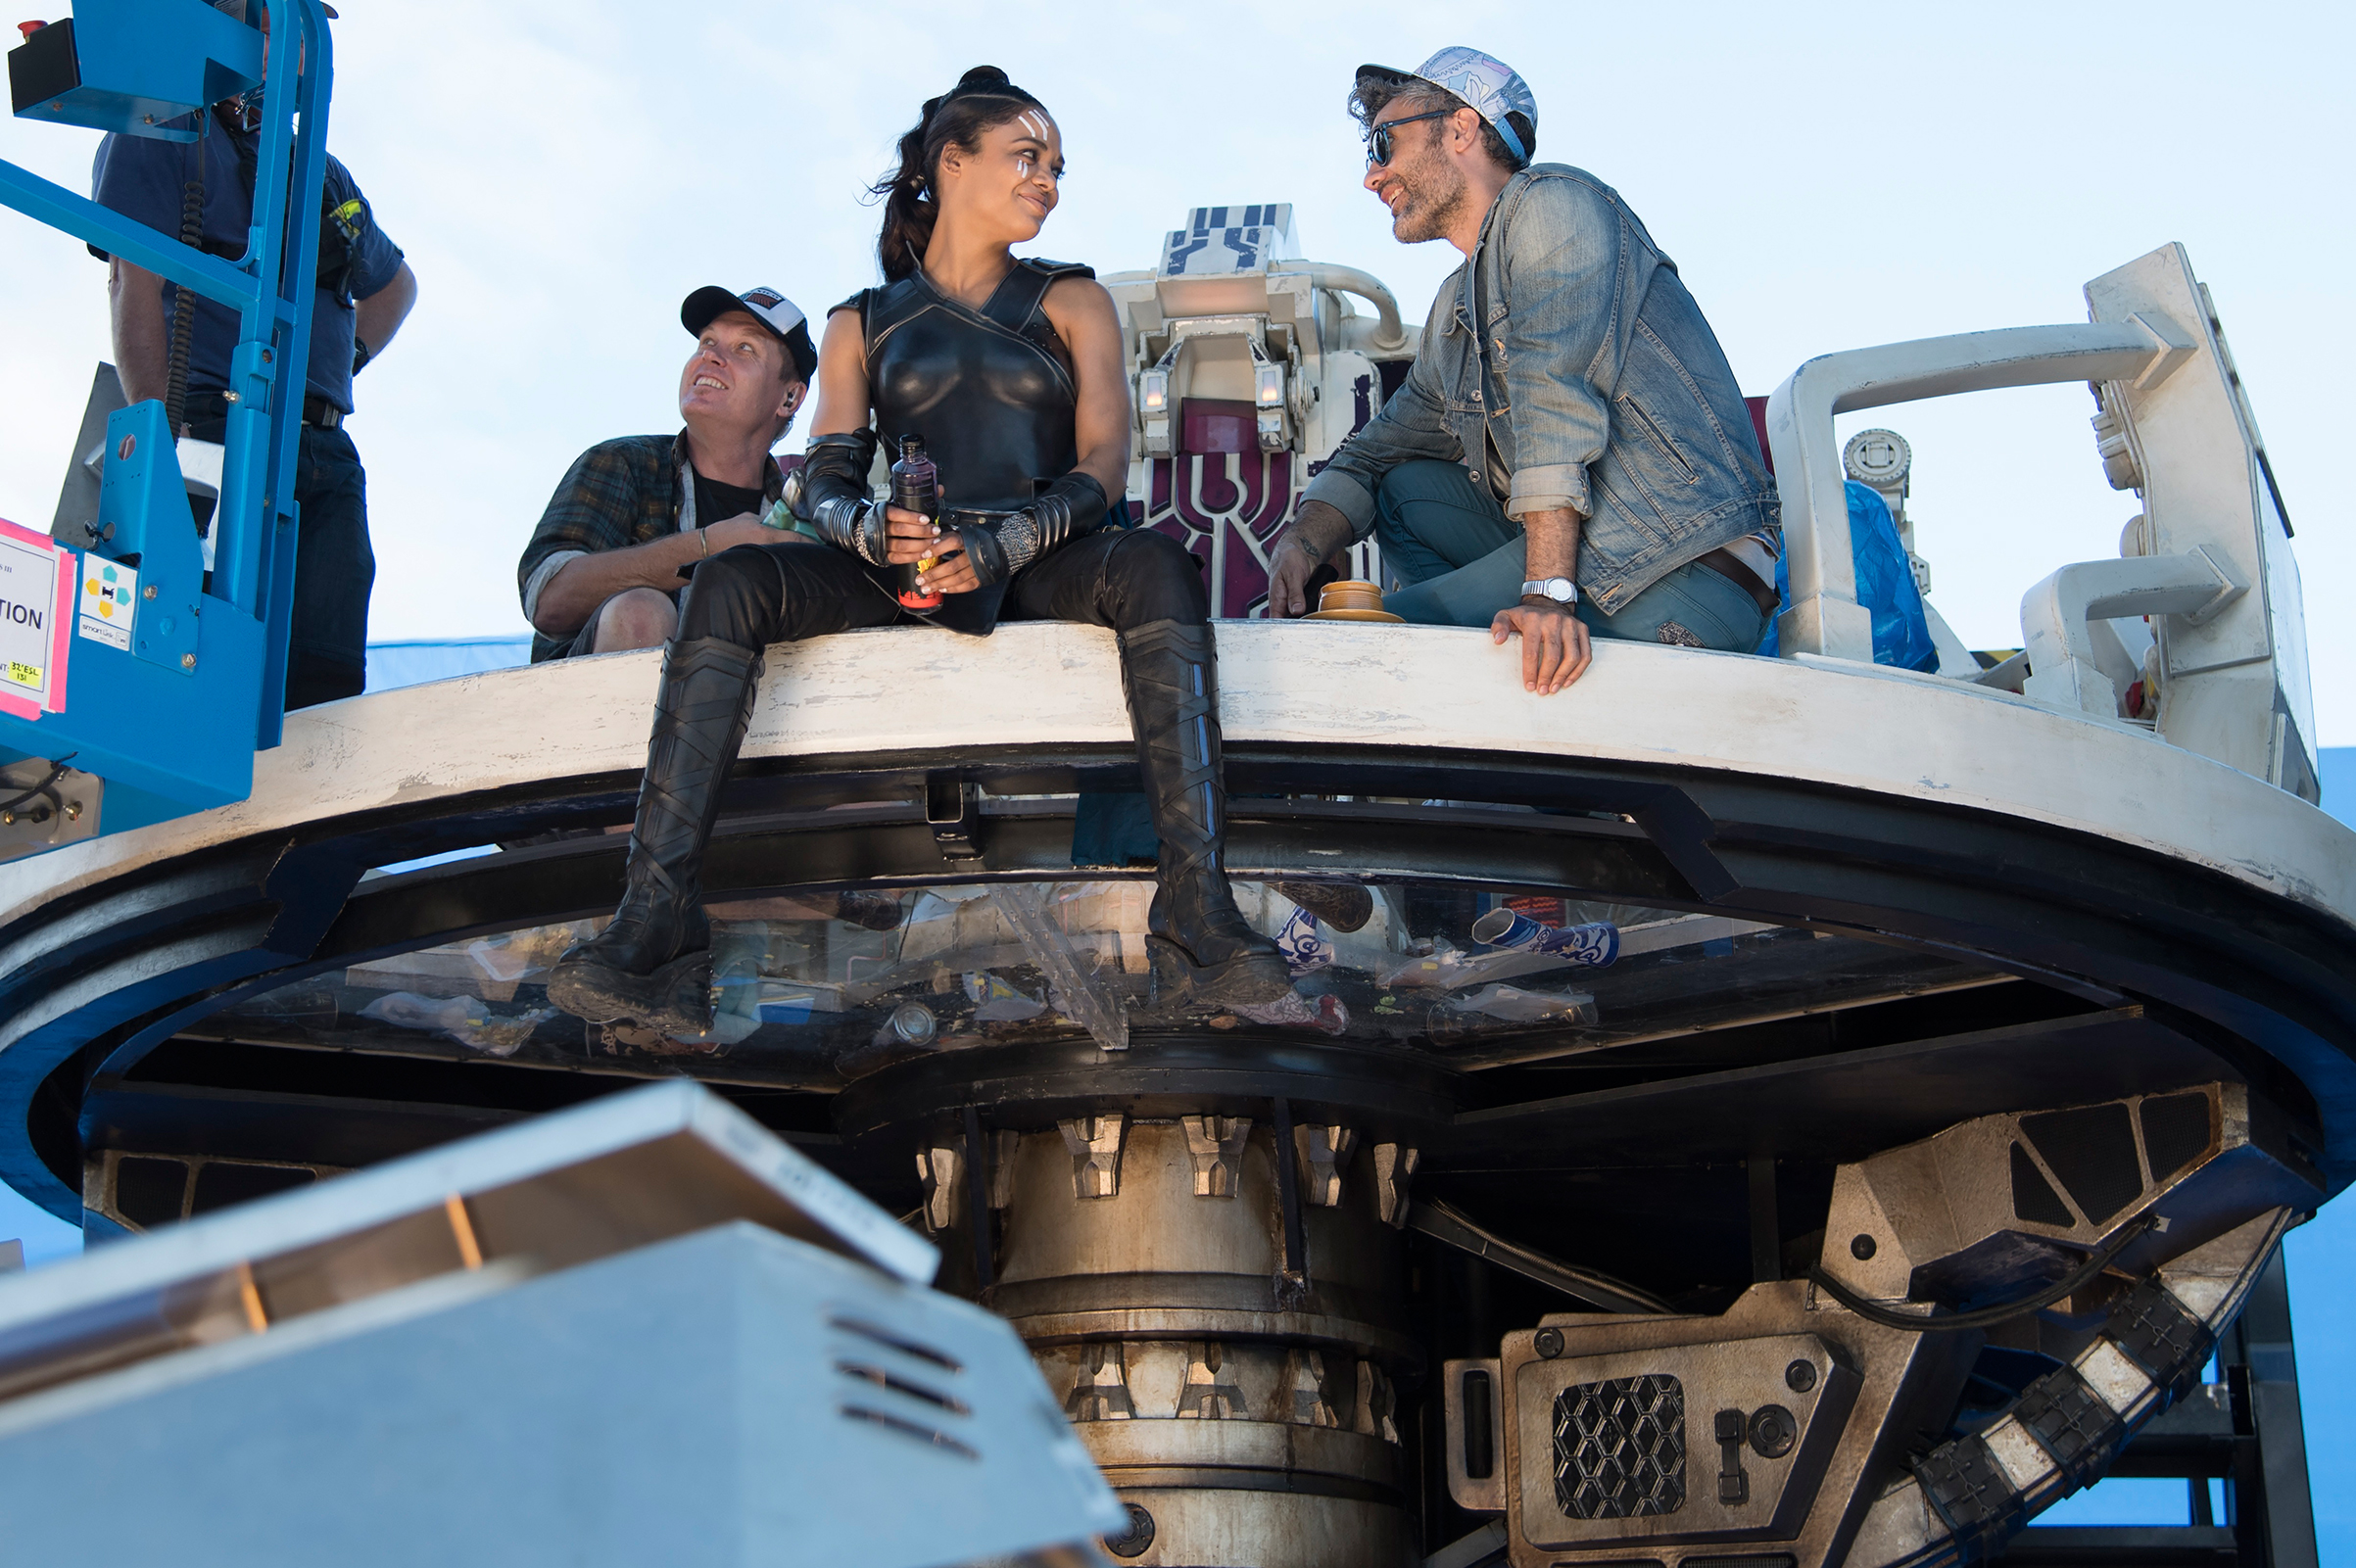 Waititi coaxed stars like Cate Blanchett, Jeff Goldblum and Tessa Thompson (above) to flex their comedic muscles on the set of Thor in Australia.